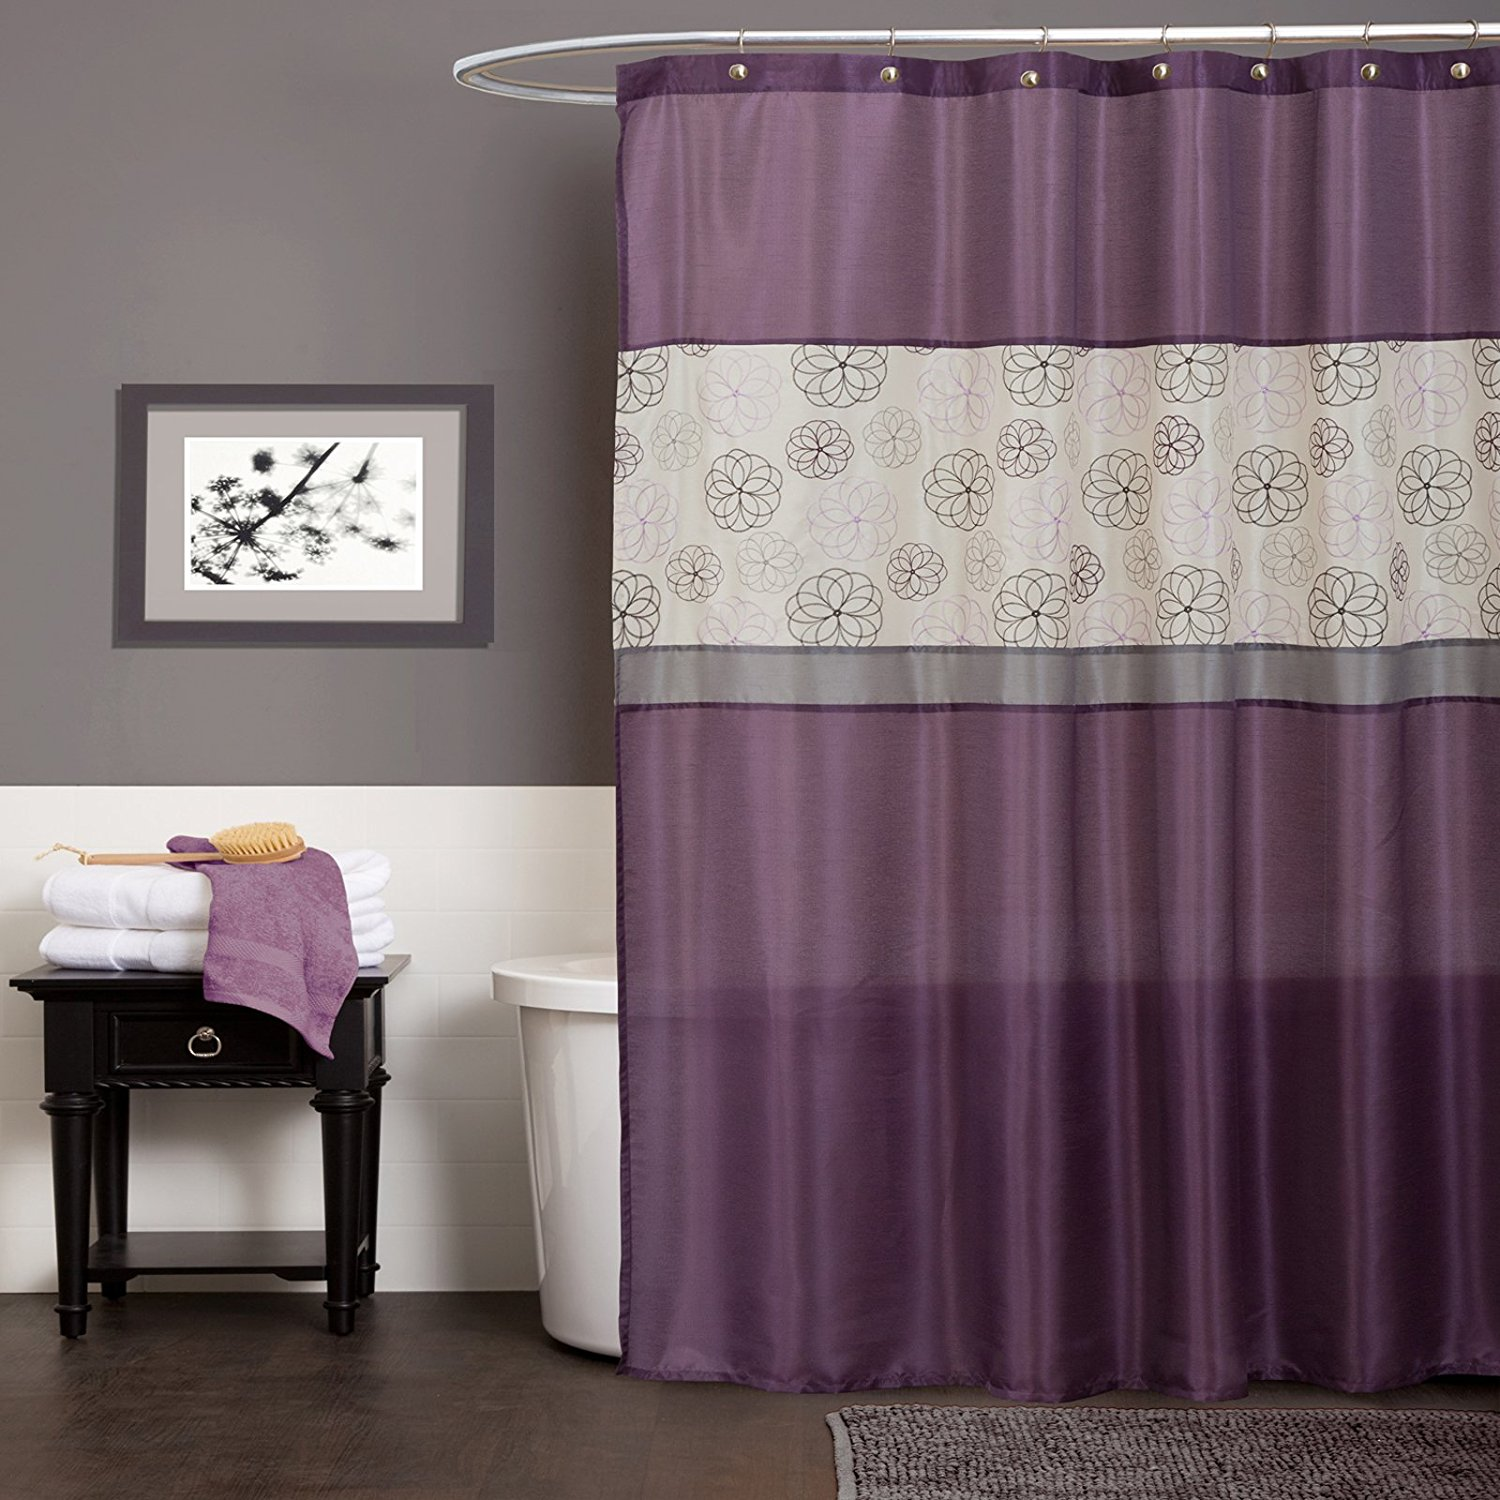 Lush Decor Covina Shower Curtain Purple Waterproof And Mildew Resistant Bathroom